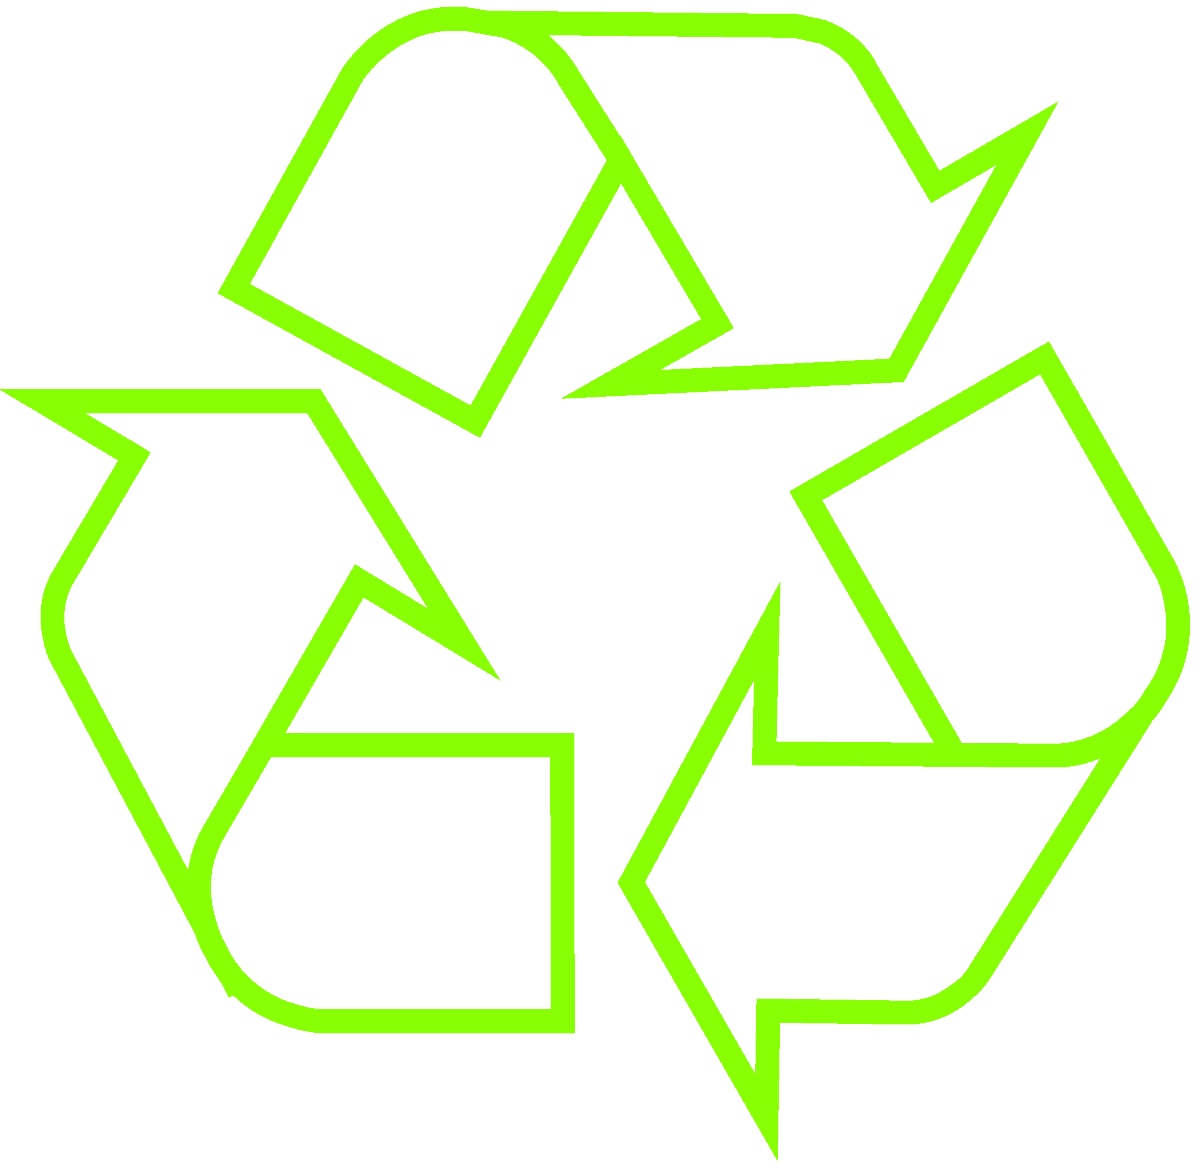 recycling-symbol-icon-outline-light-green